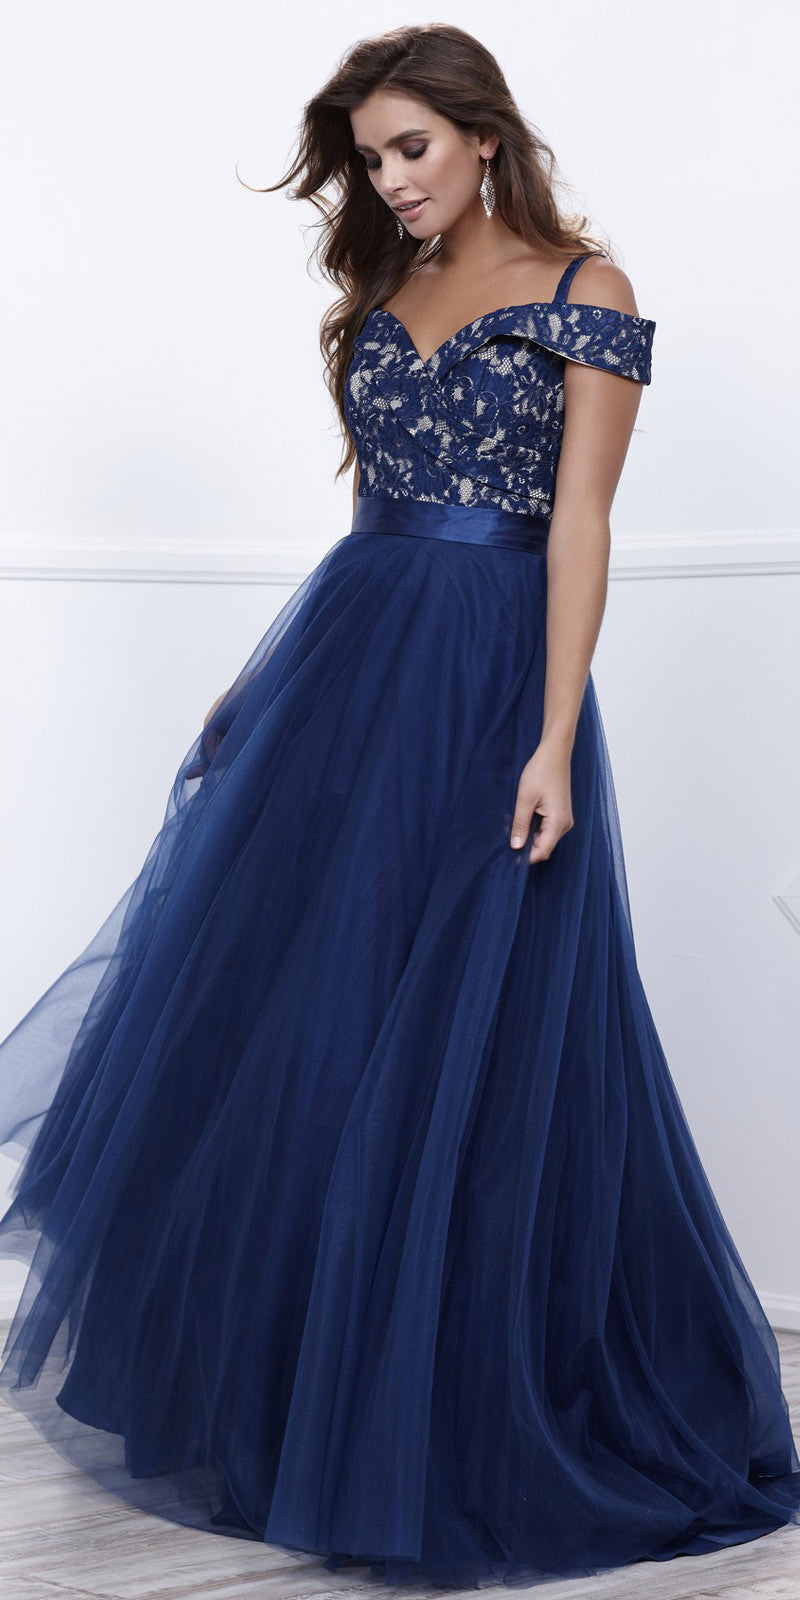 ca54009bbe47 ... Navy Off-Shoulder Lace Bodice A-line Tulle Overlay Ball Gown ...